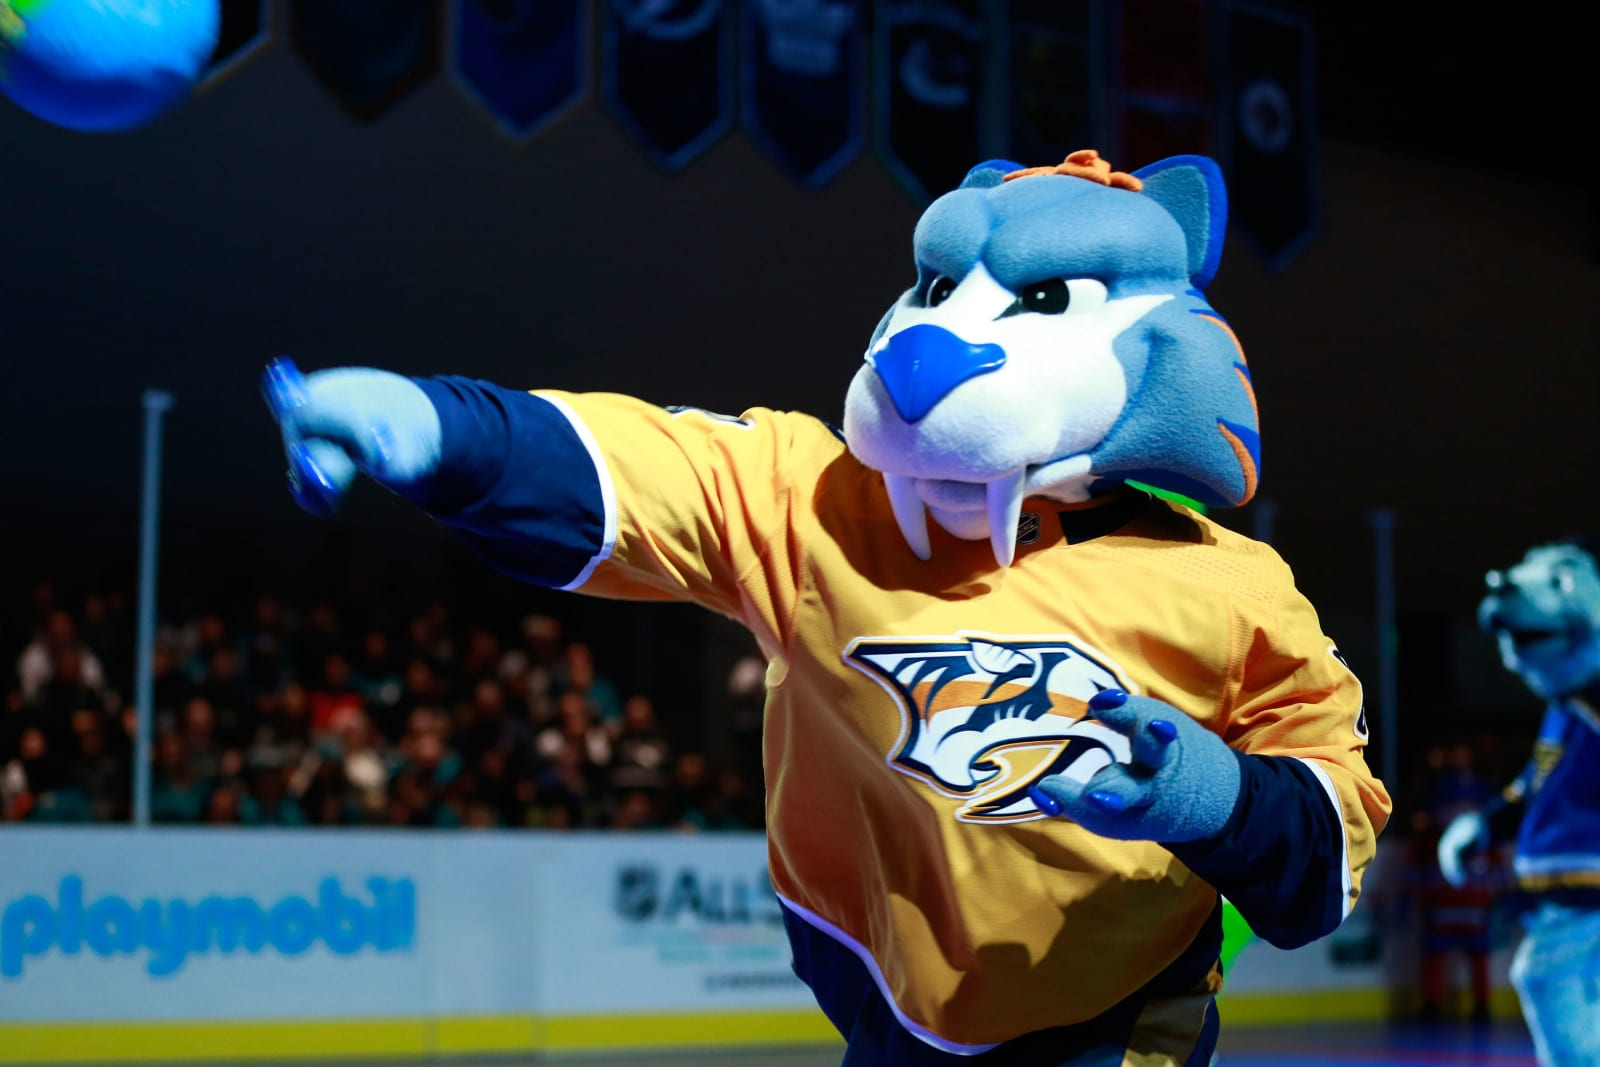 Nhl Power Rankings Ranking Each Mascot From Worst To Best Page 6